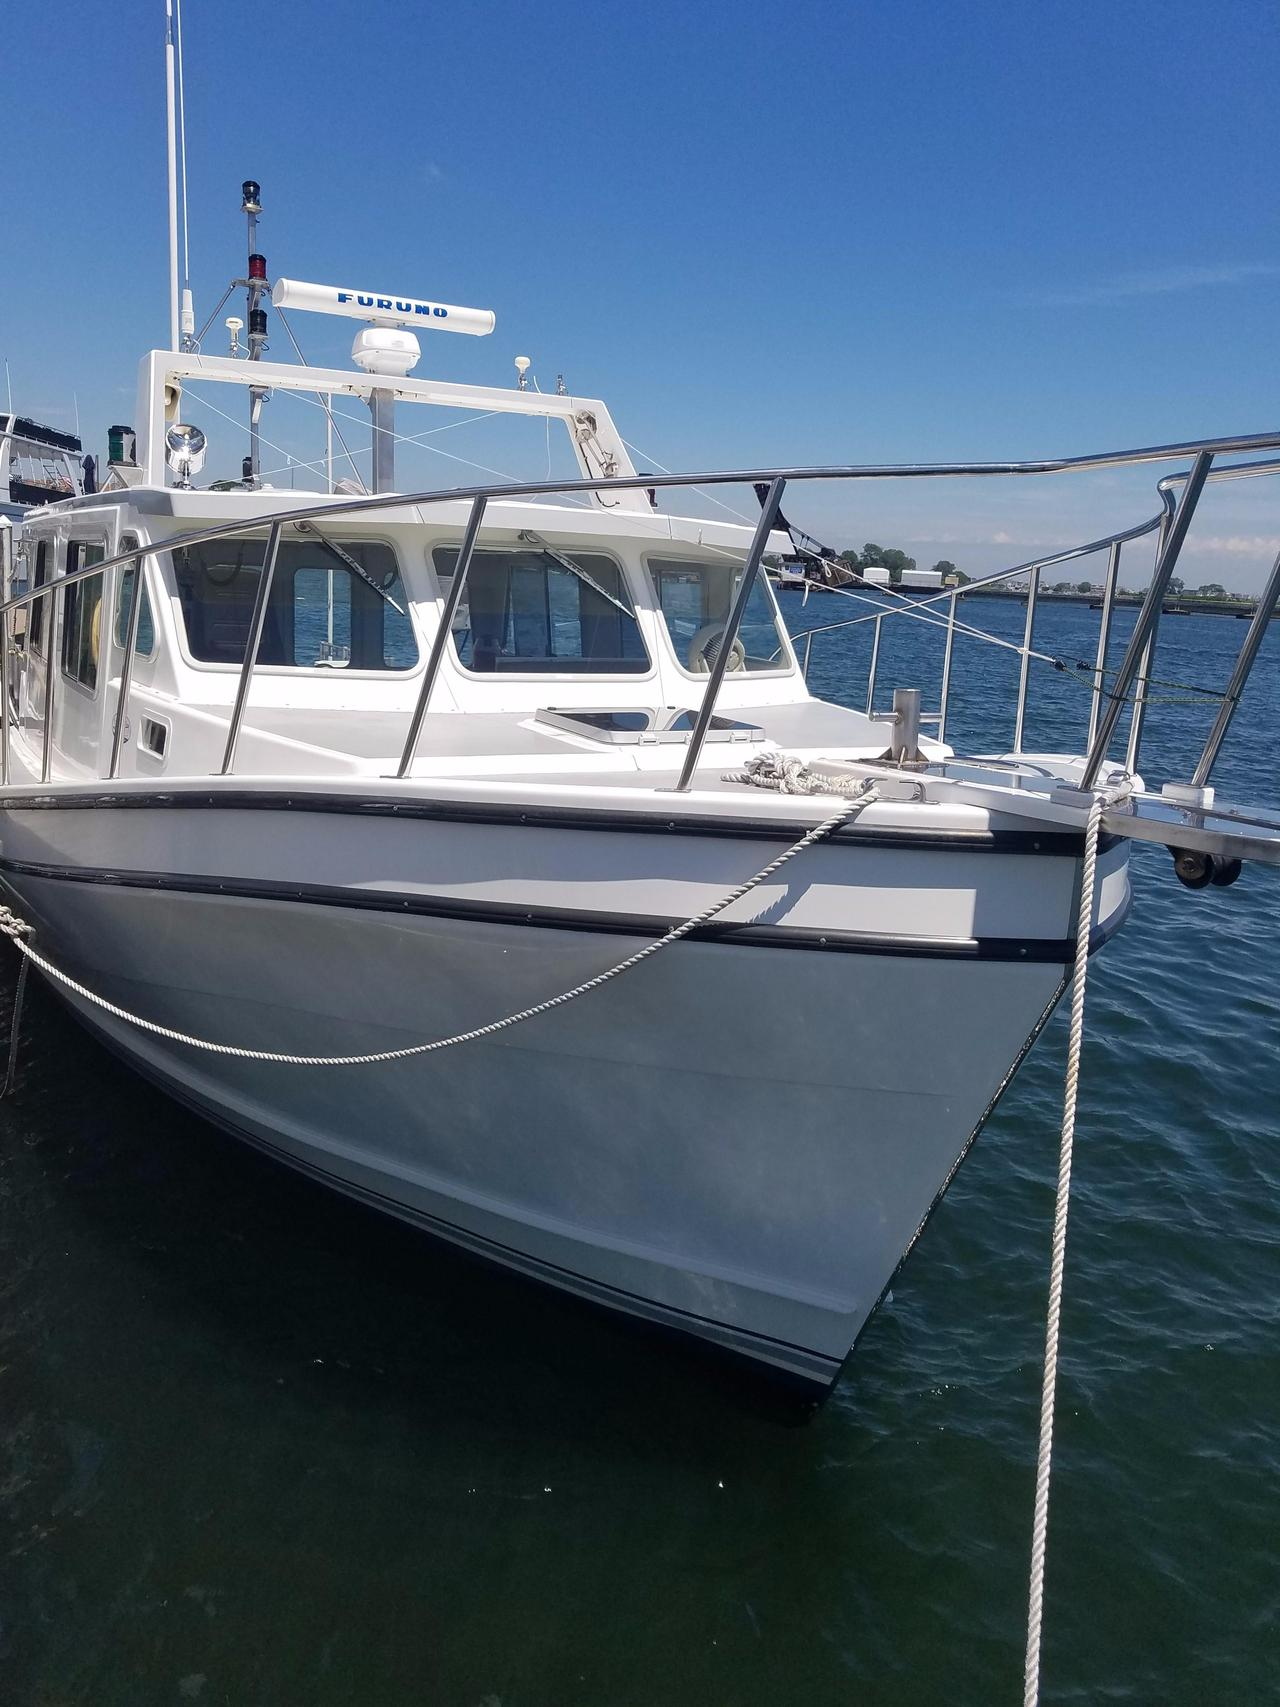 2006 used provincial 45 bluewater fishing boat for sale for Fishing boats for sale nj